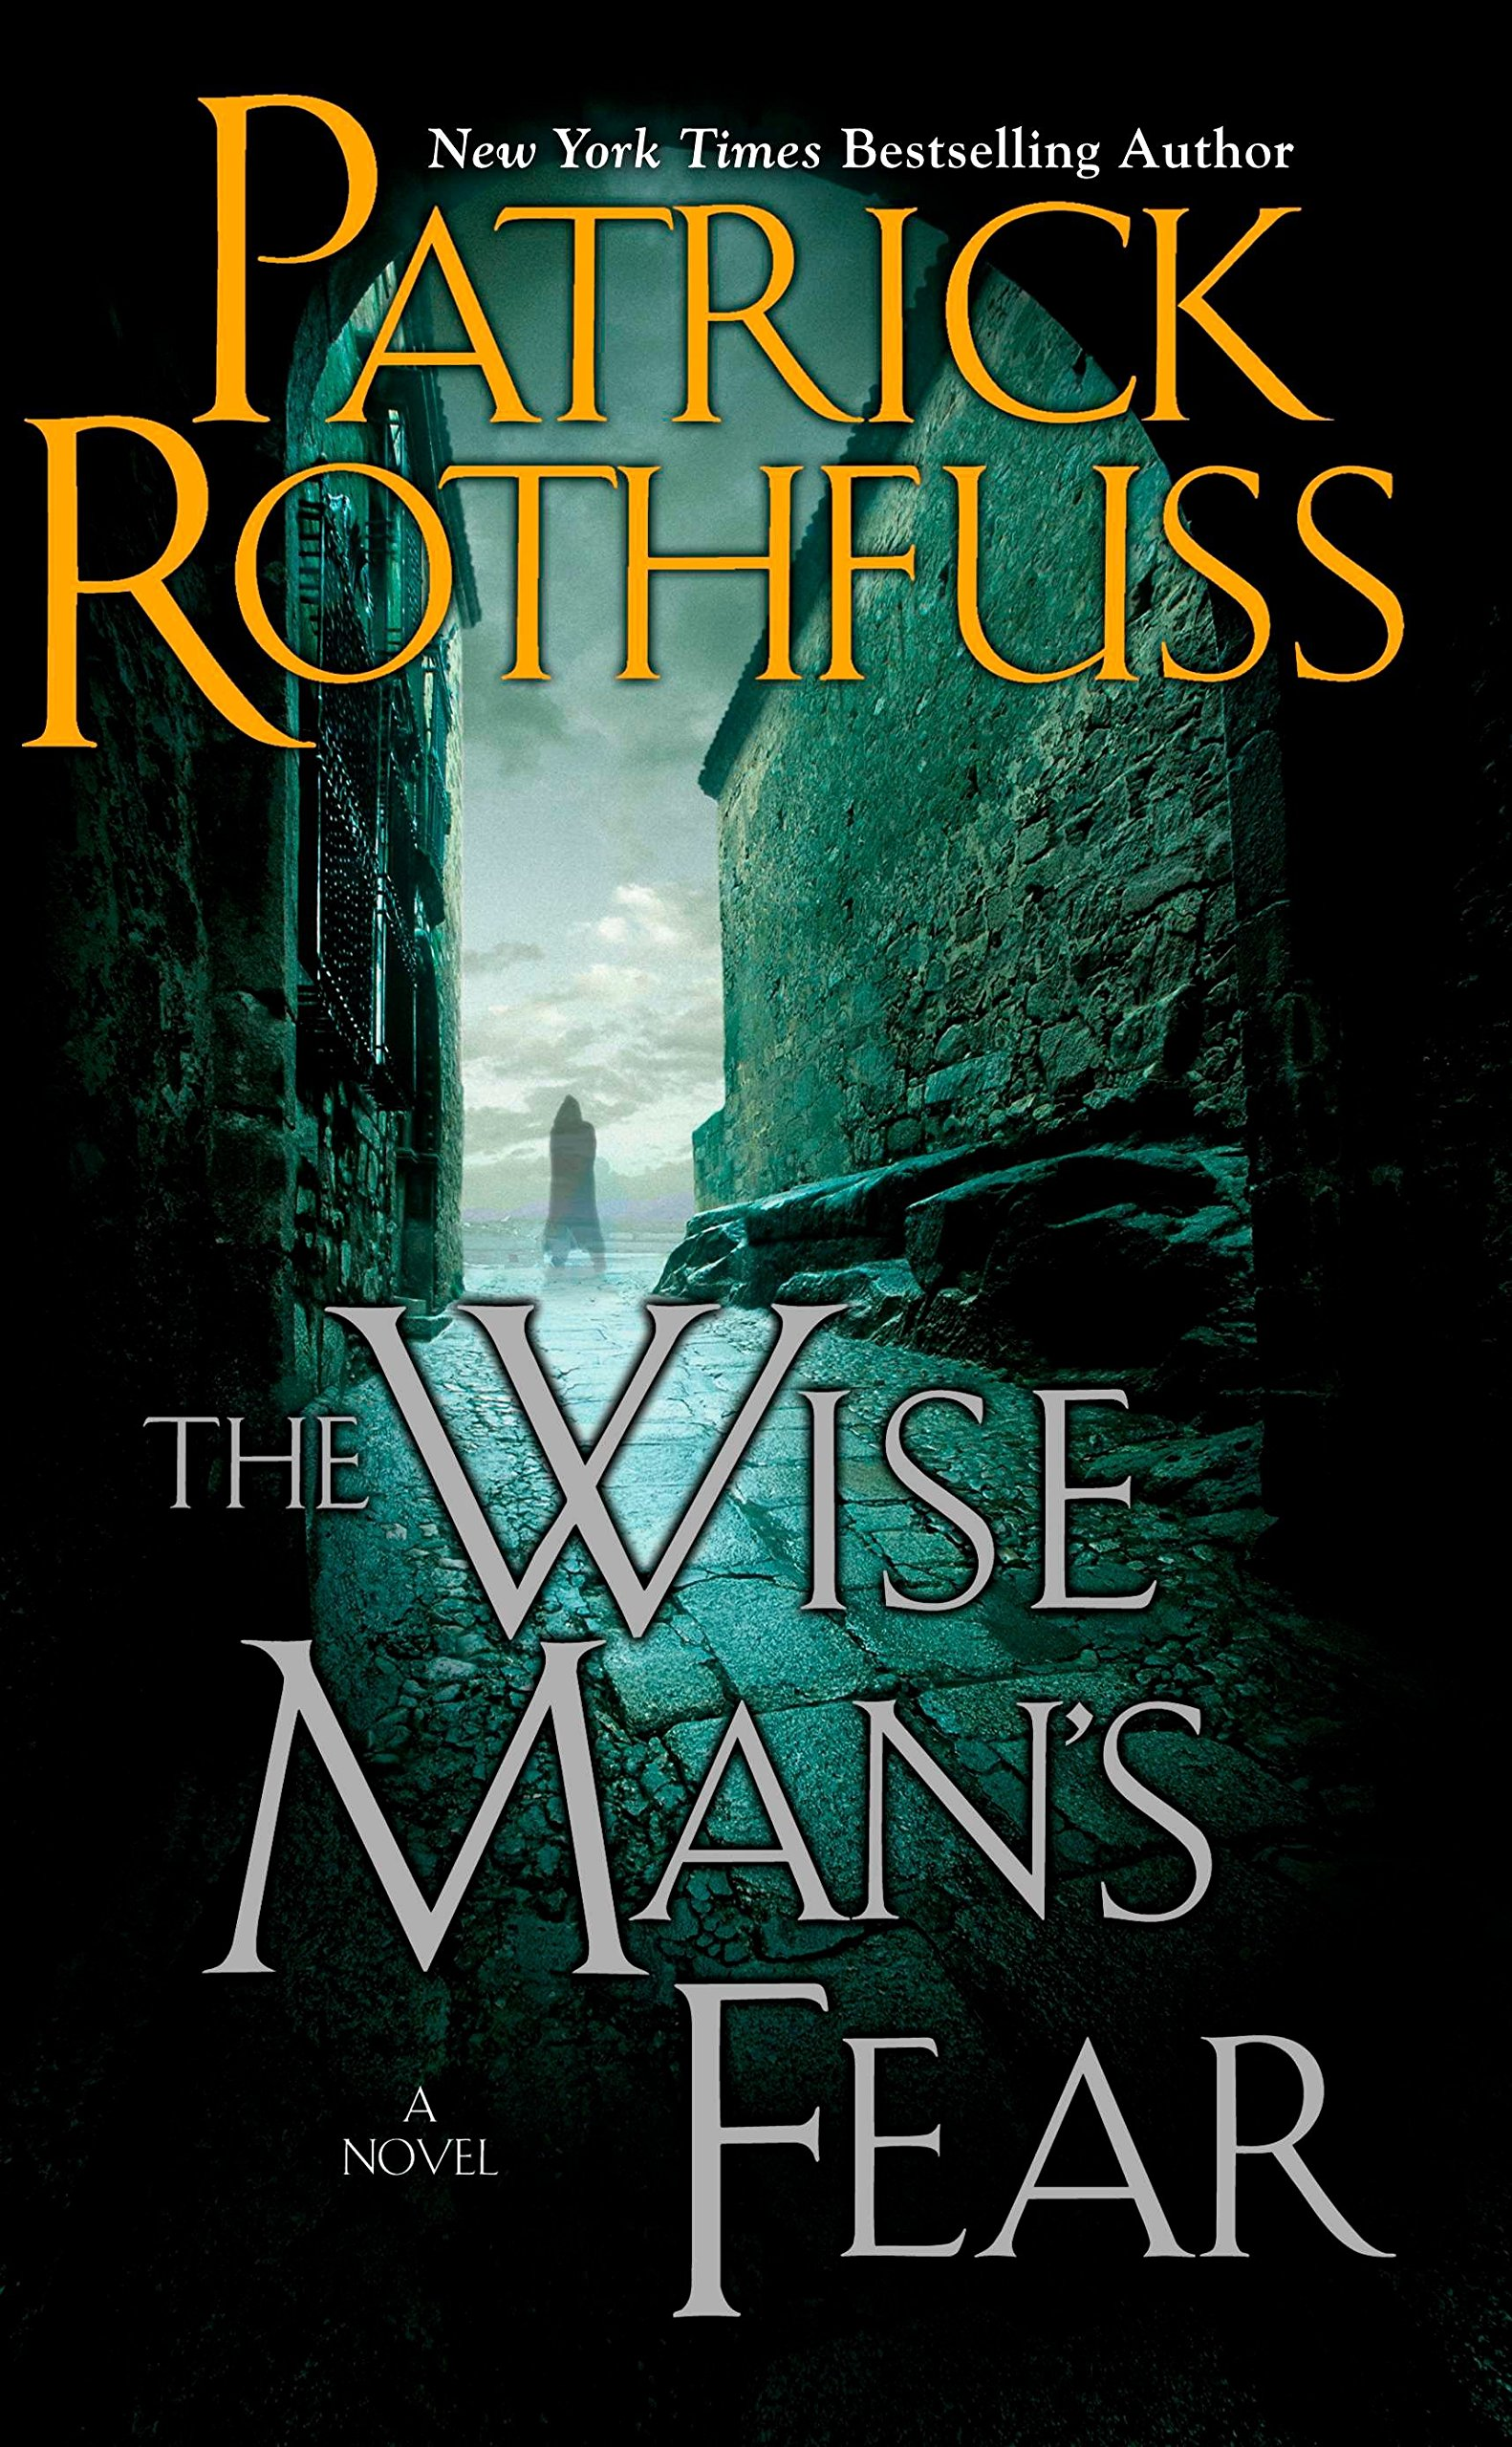 Rothfuss, WISE MAN'S FEAR, US cover.jpg